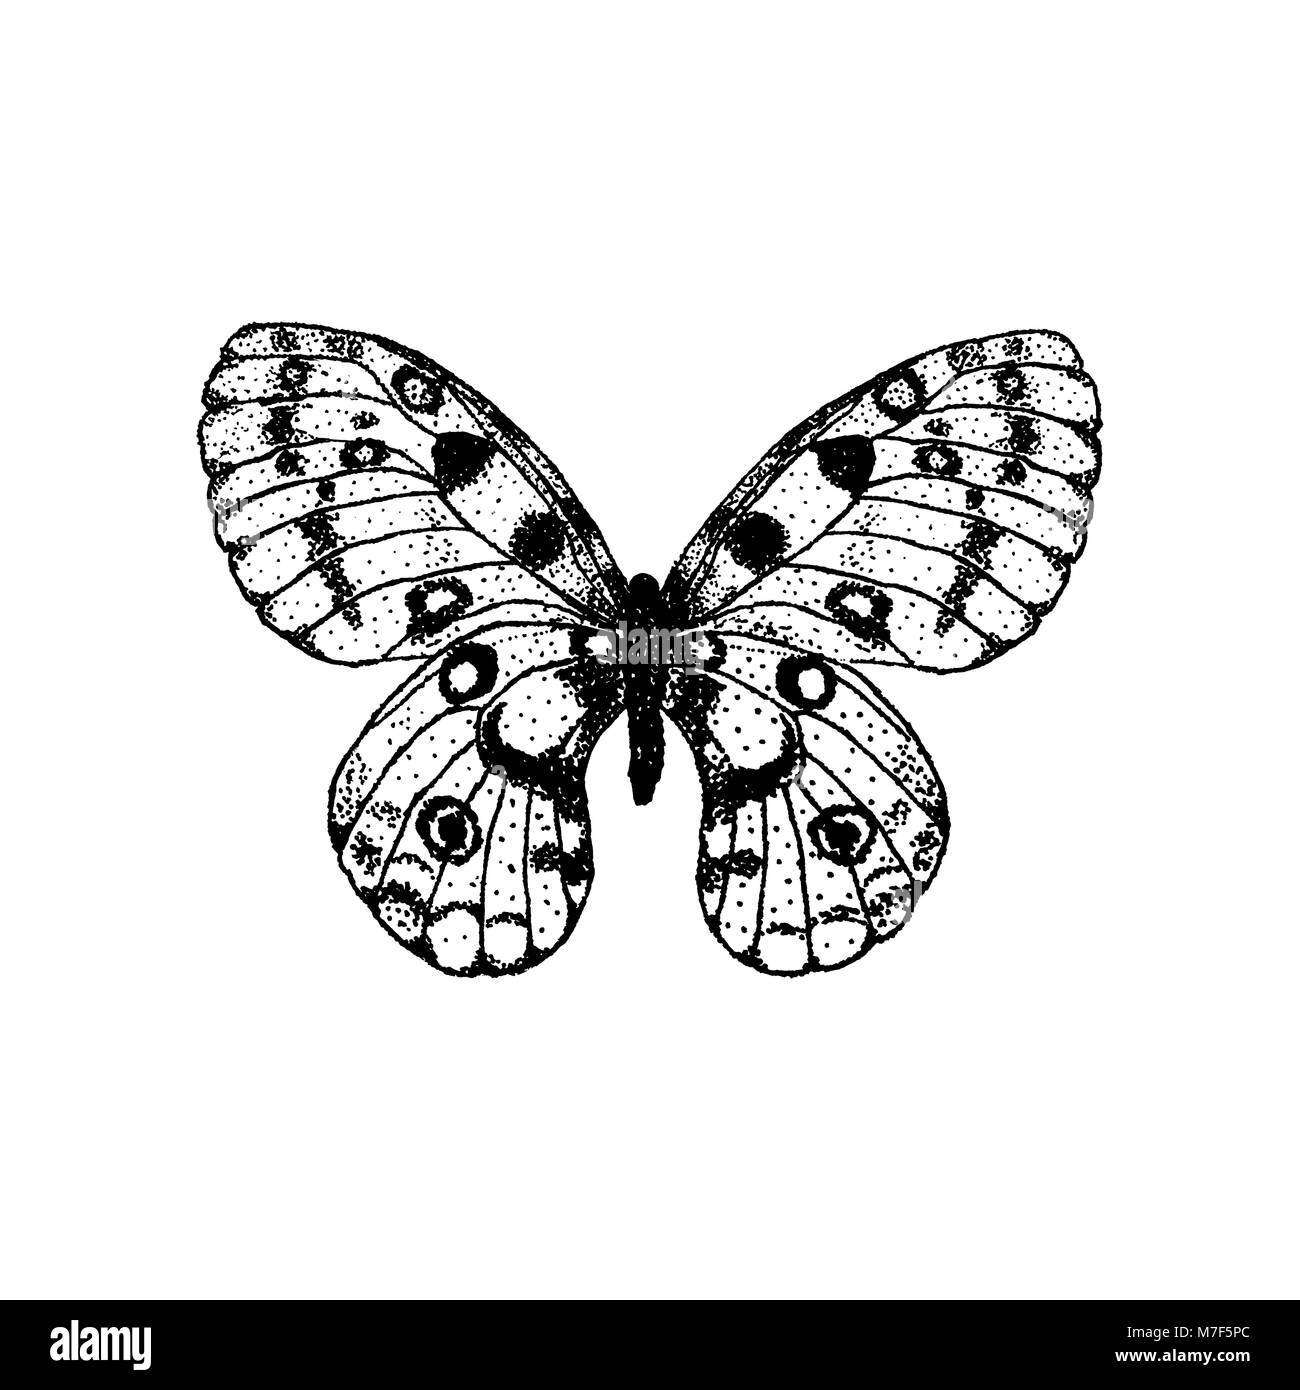 Vector illustration of hand drawing butterfly Parnassius apollo - Stock Vector